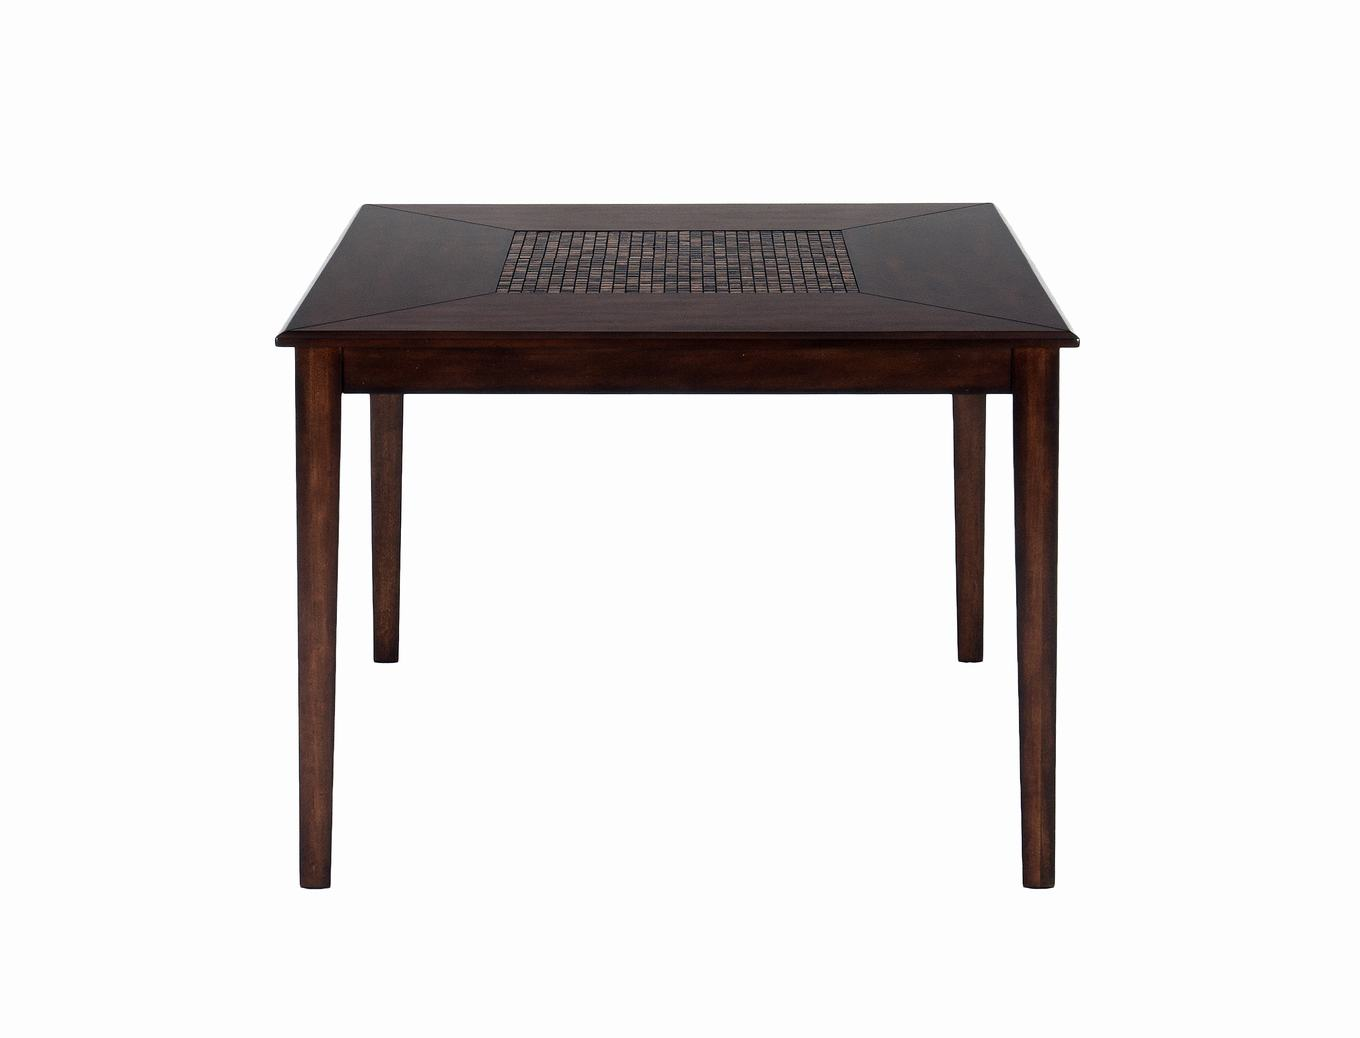 Finish Counter Height Square Table With Fixed Top And Mosaic Inlay